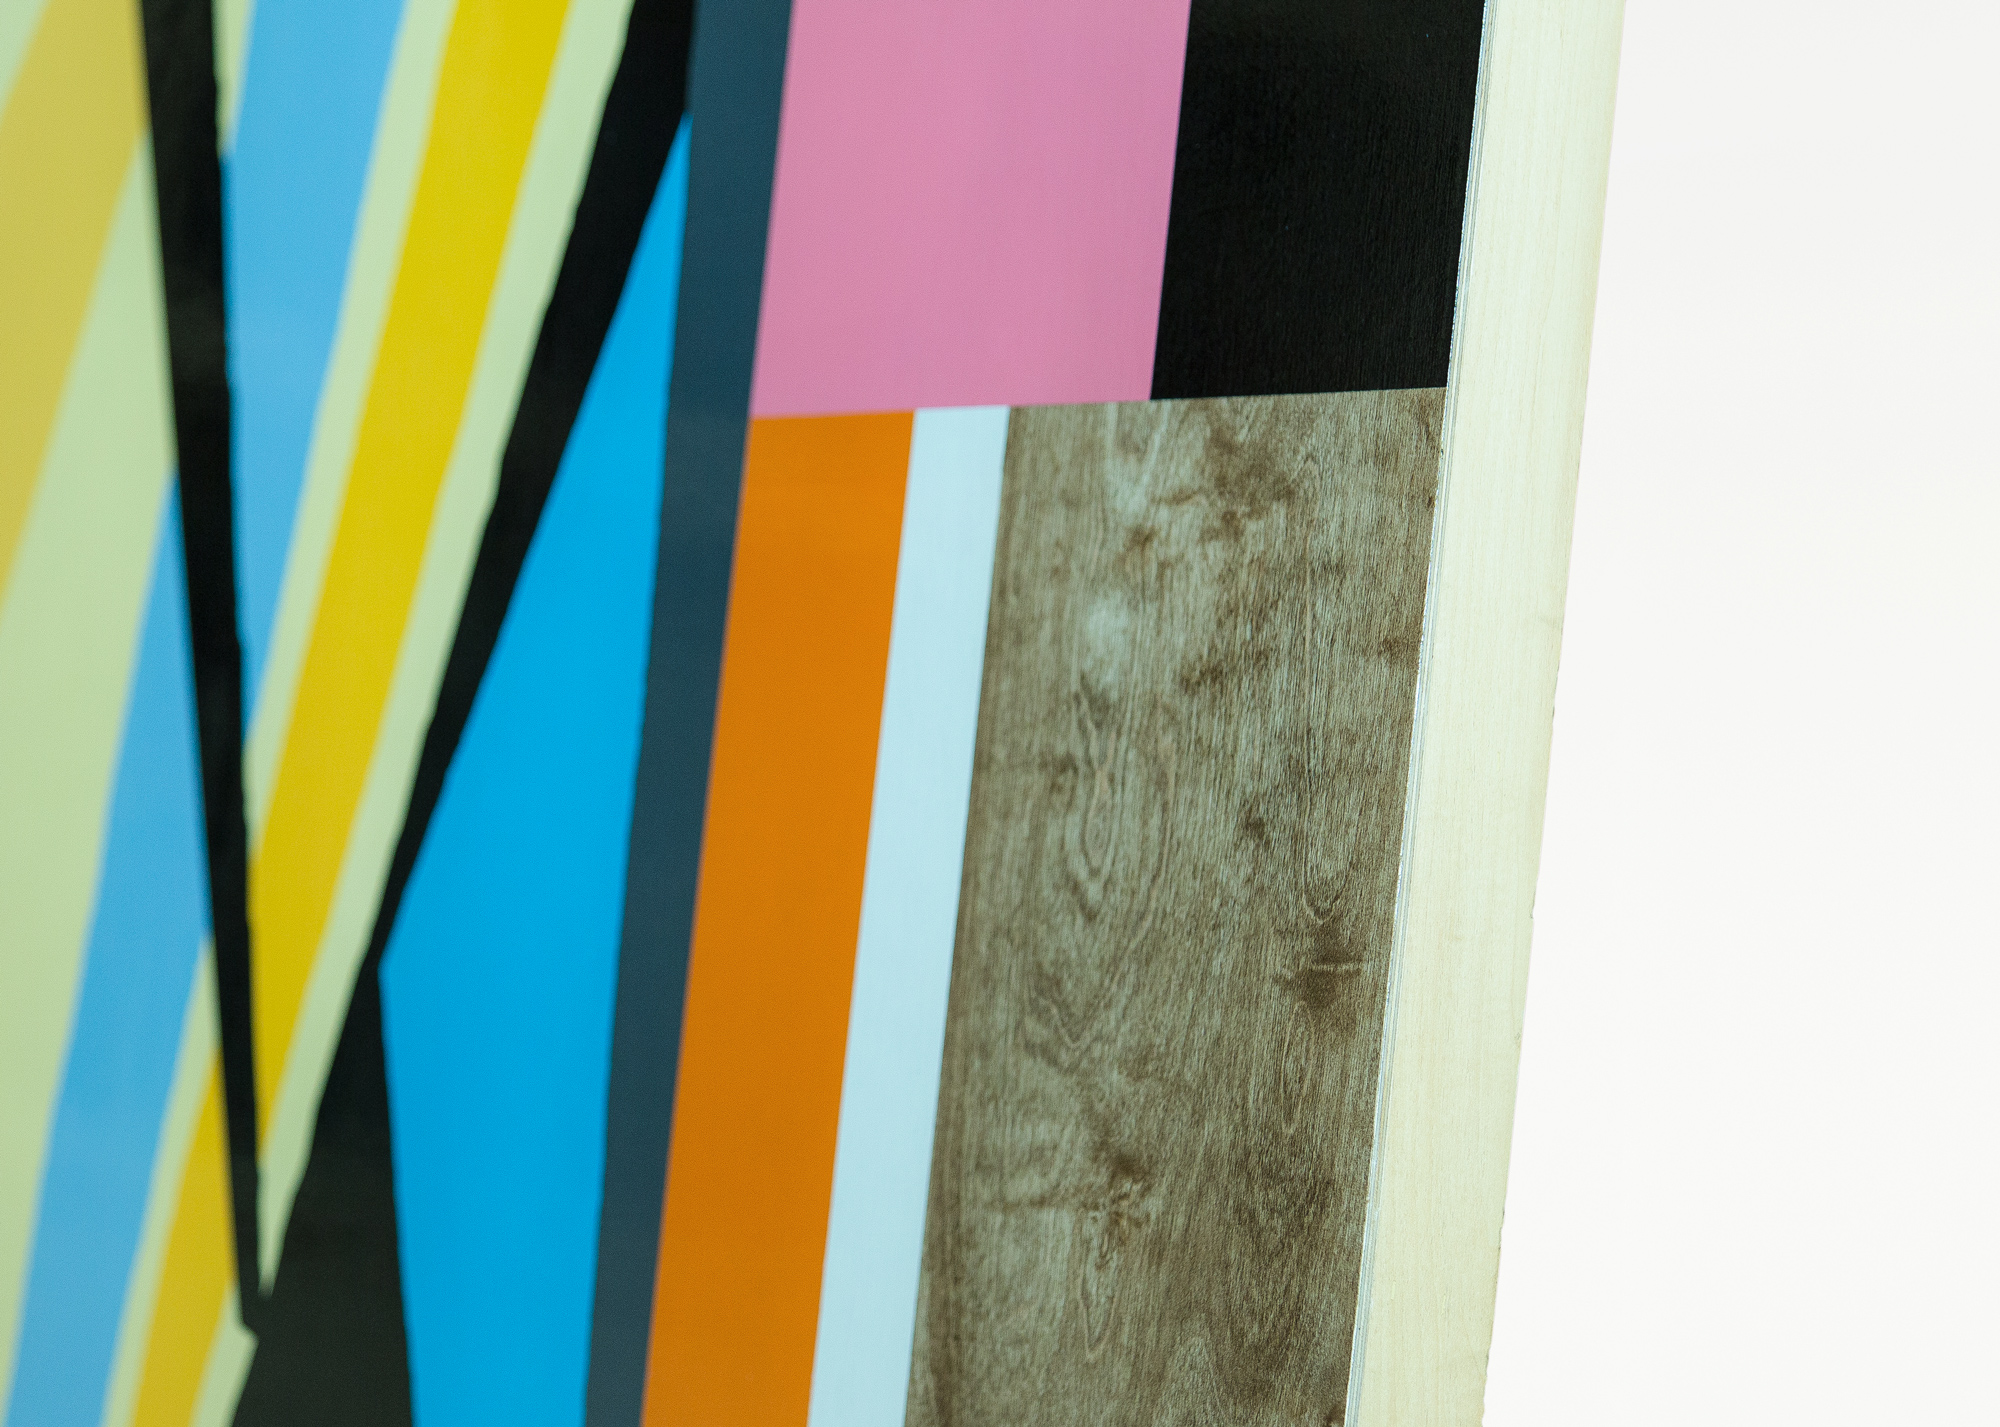 Untitled, 2015 (detail) Spray paint and polyurethane on wood 36 x 48 x 3 inches